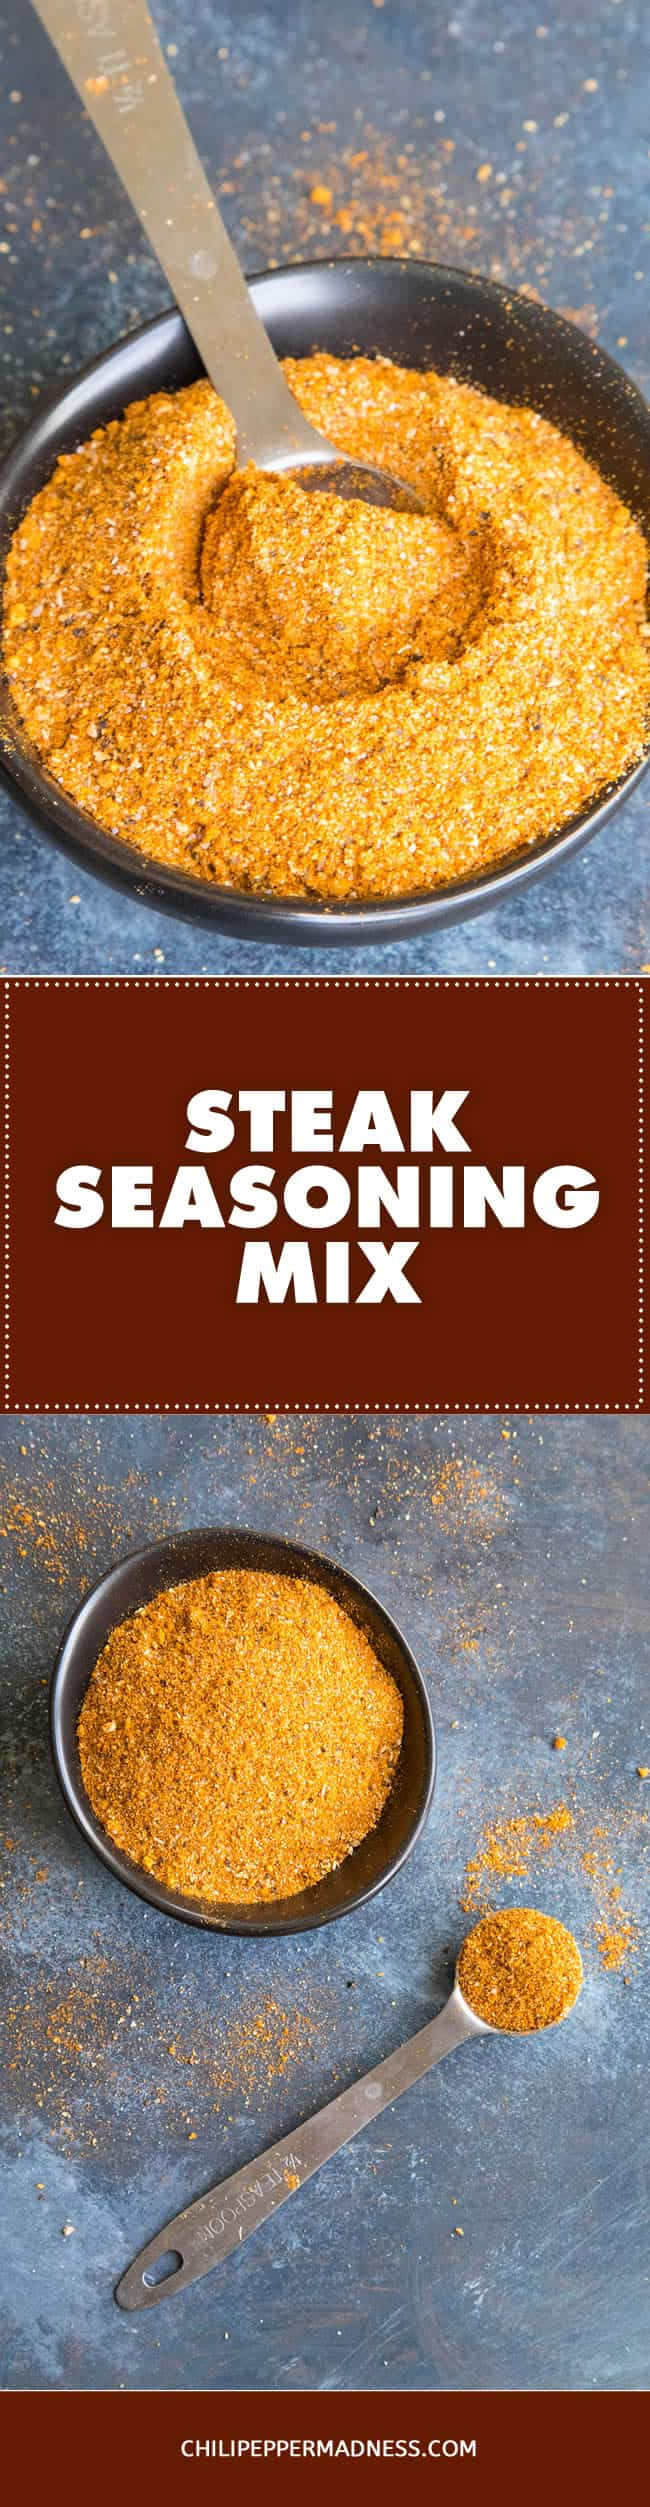 Steak Seasoning Mix - Recipe | ChiliPepperMadness.com #steak #seasoning #spicyfood